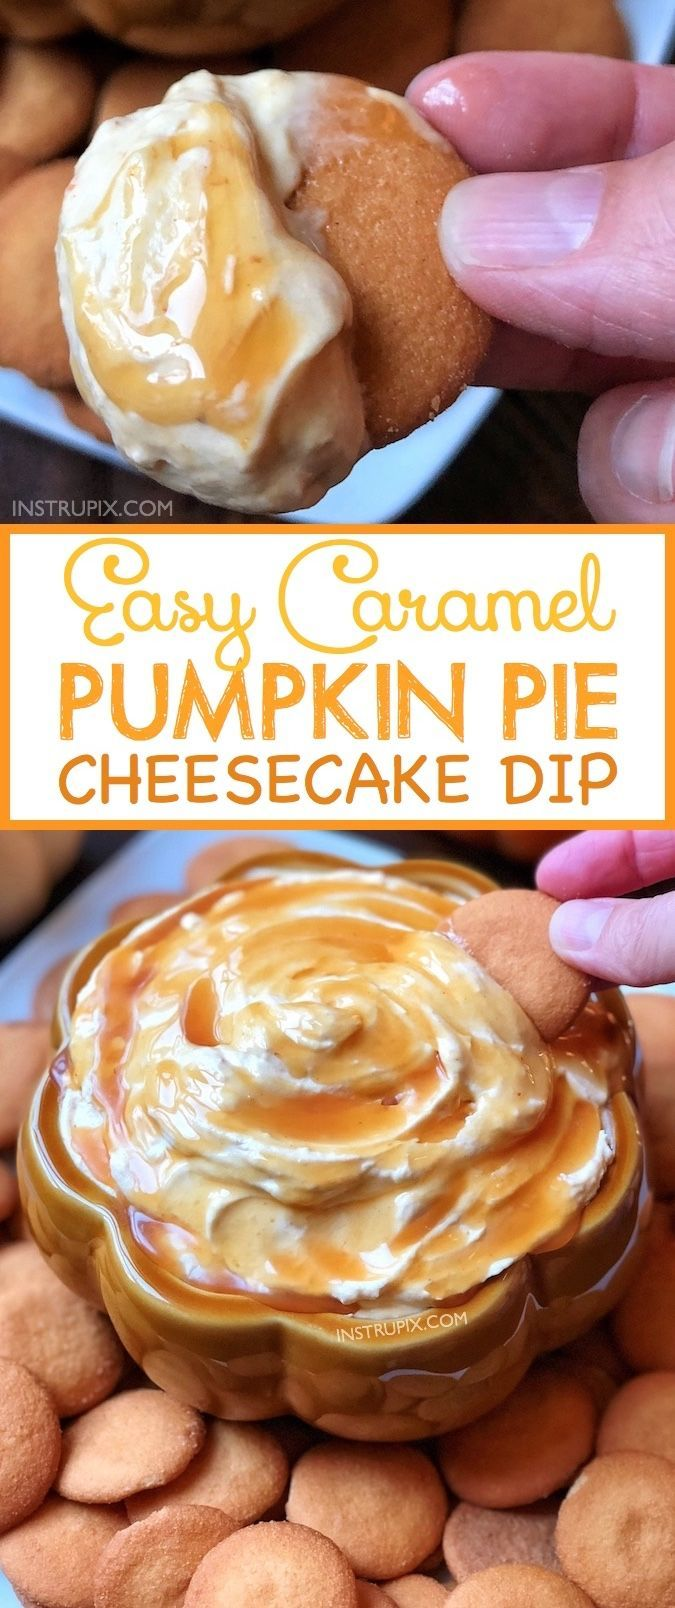 No bake, quick and easy pumpkin dessert (or appetizer)! Caramel Pumpkin Pie Cheesecake Dip Recipe (made with cream cheese, cool whip, pumpkin pie mix and caramel!) Serve with ginger snaps, Nilla Wafers, pretzels, graham crackers or apples. Perfect for Fall and Thanksgiving! Instrupix.com